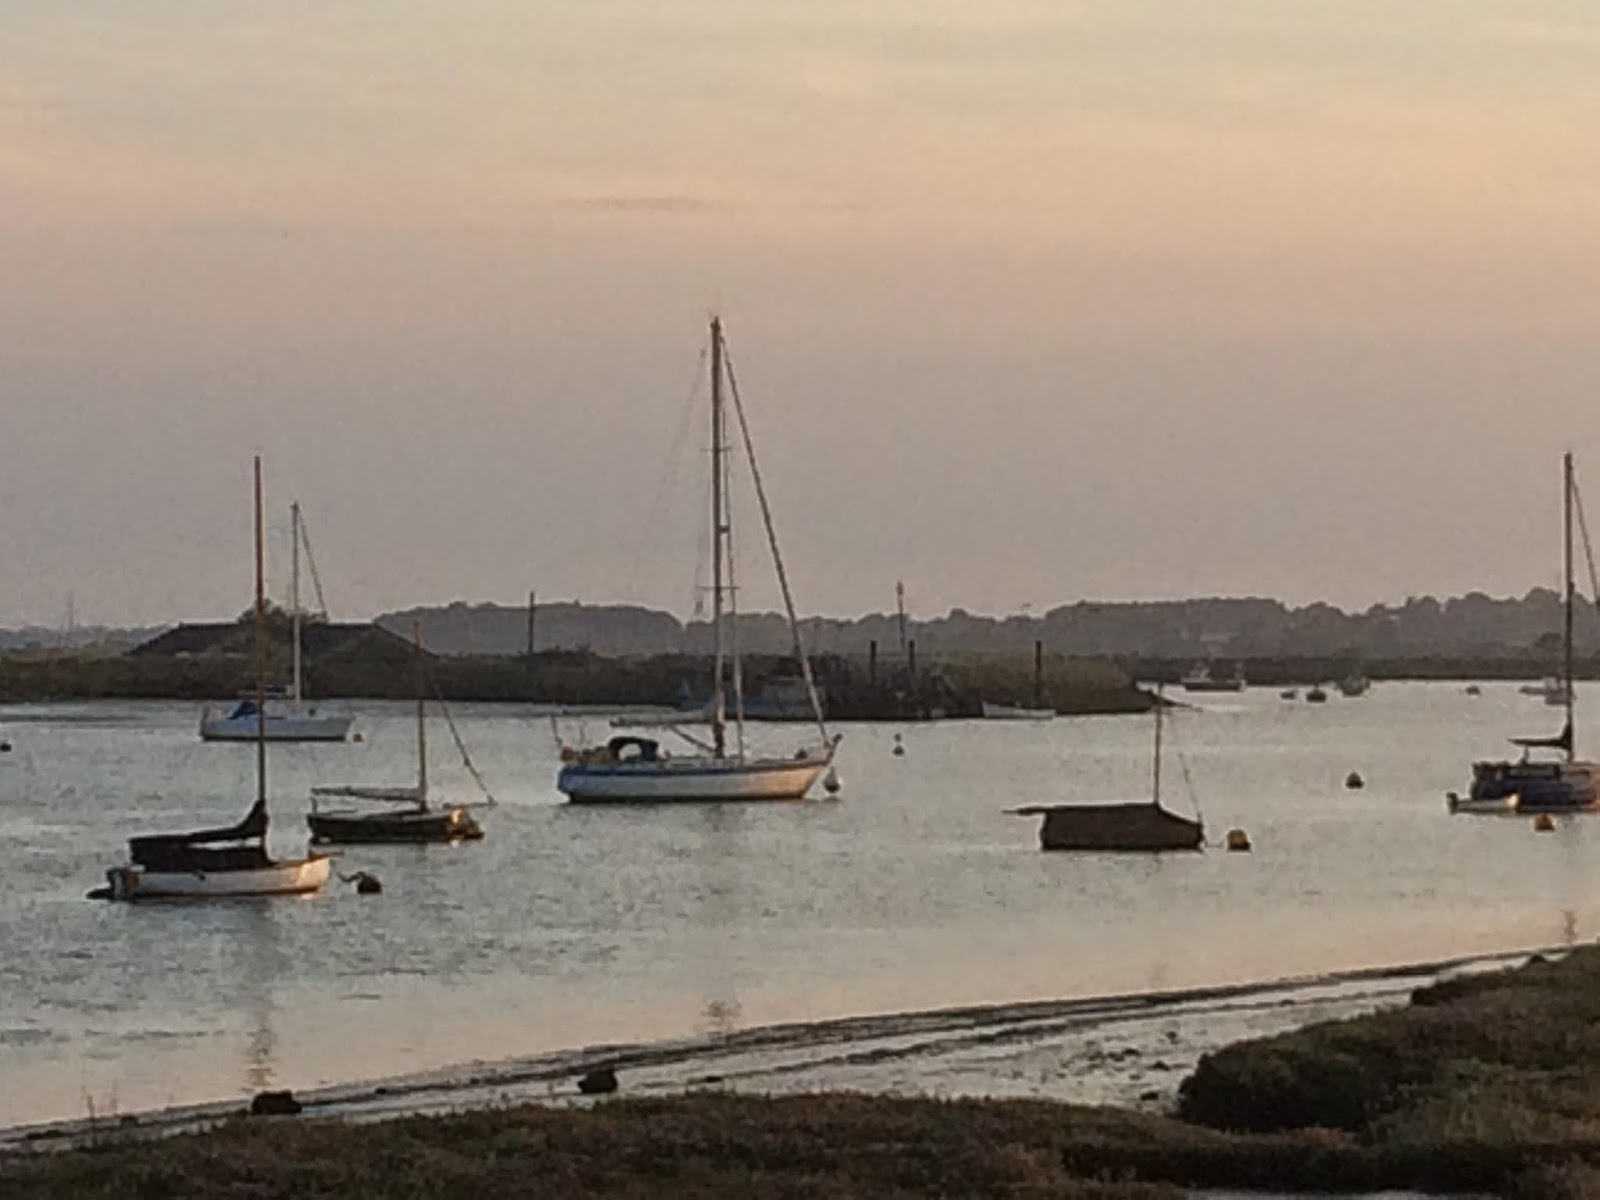 boats at sunset in Orford, Suffolk